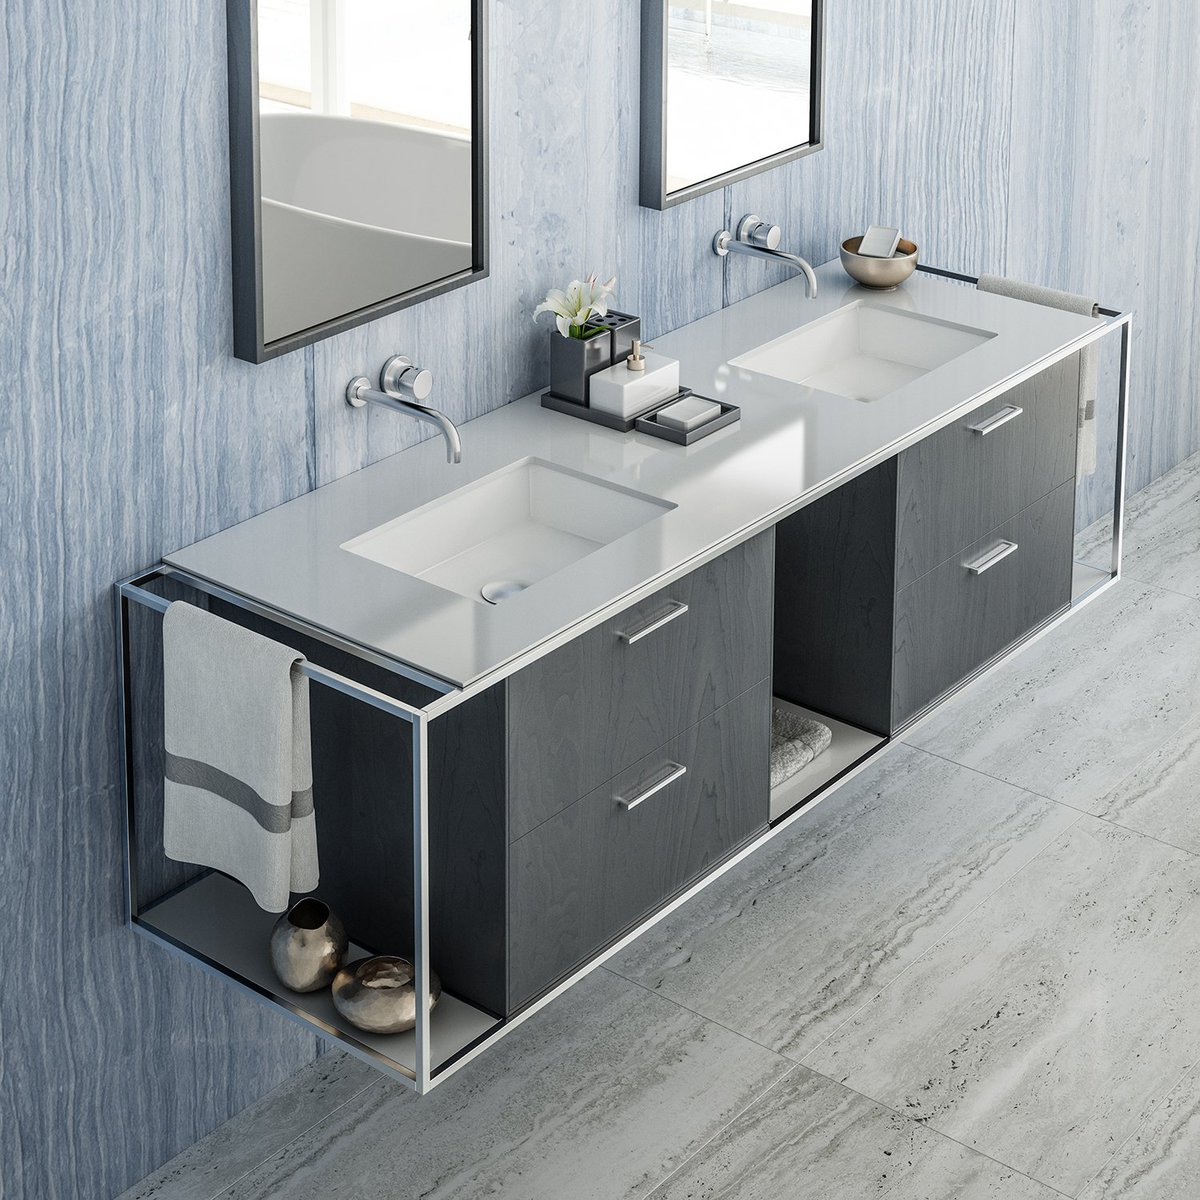 #Linea Vanity L426 Is Perfect For That Shared Bathroom...  Https://goo.gl/p8VRuc     #Vanity #DoubleVanity #Sink #HisAndHers  #PersonalSpa #Bathroom #beauty ...